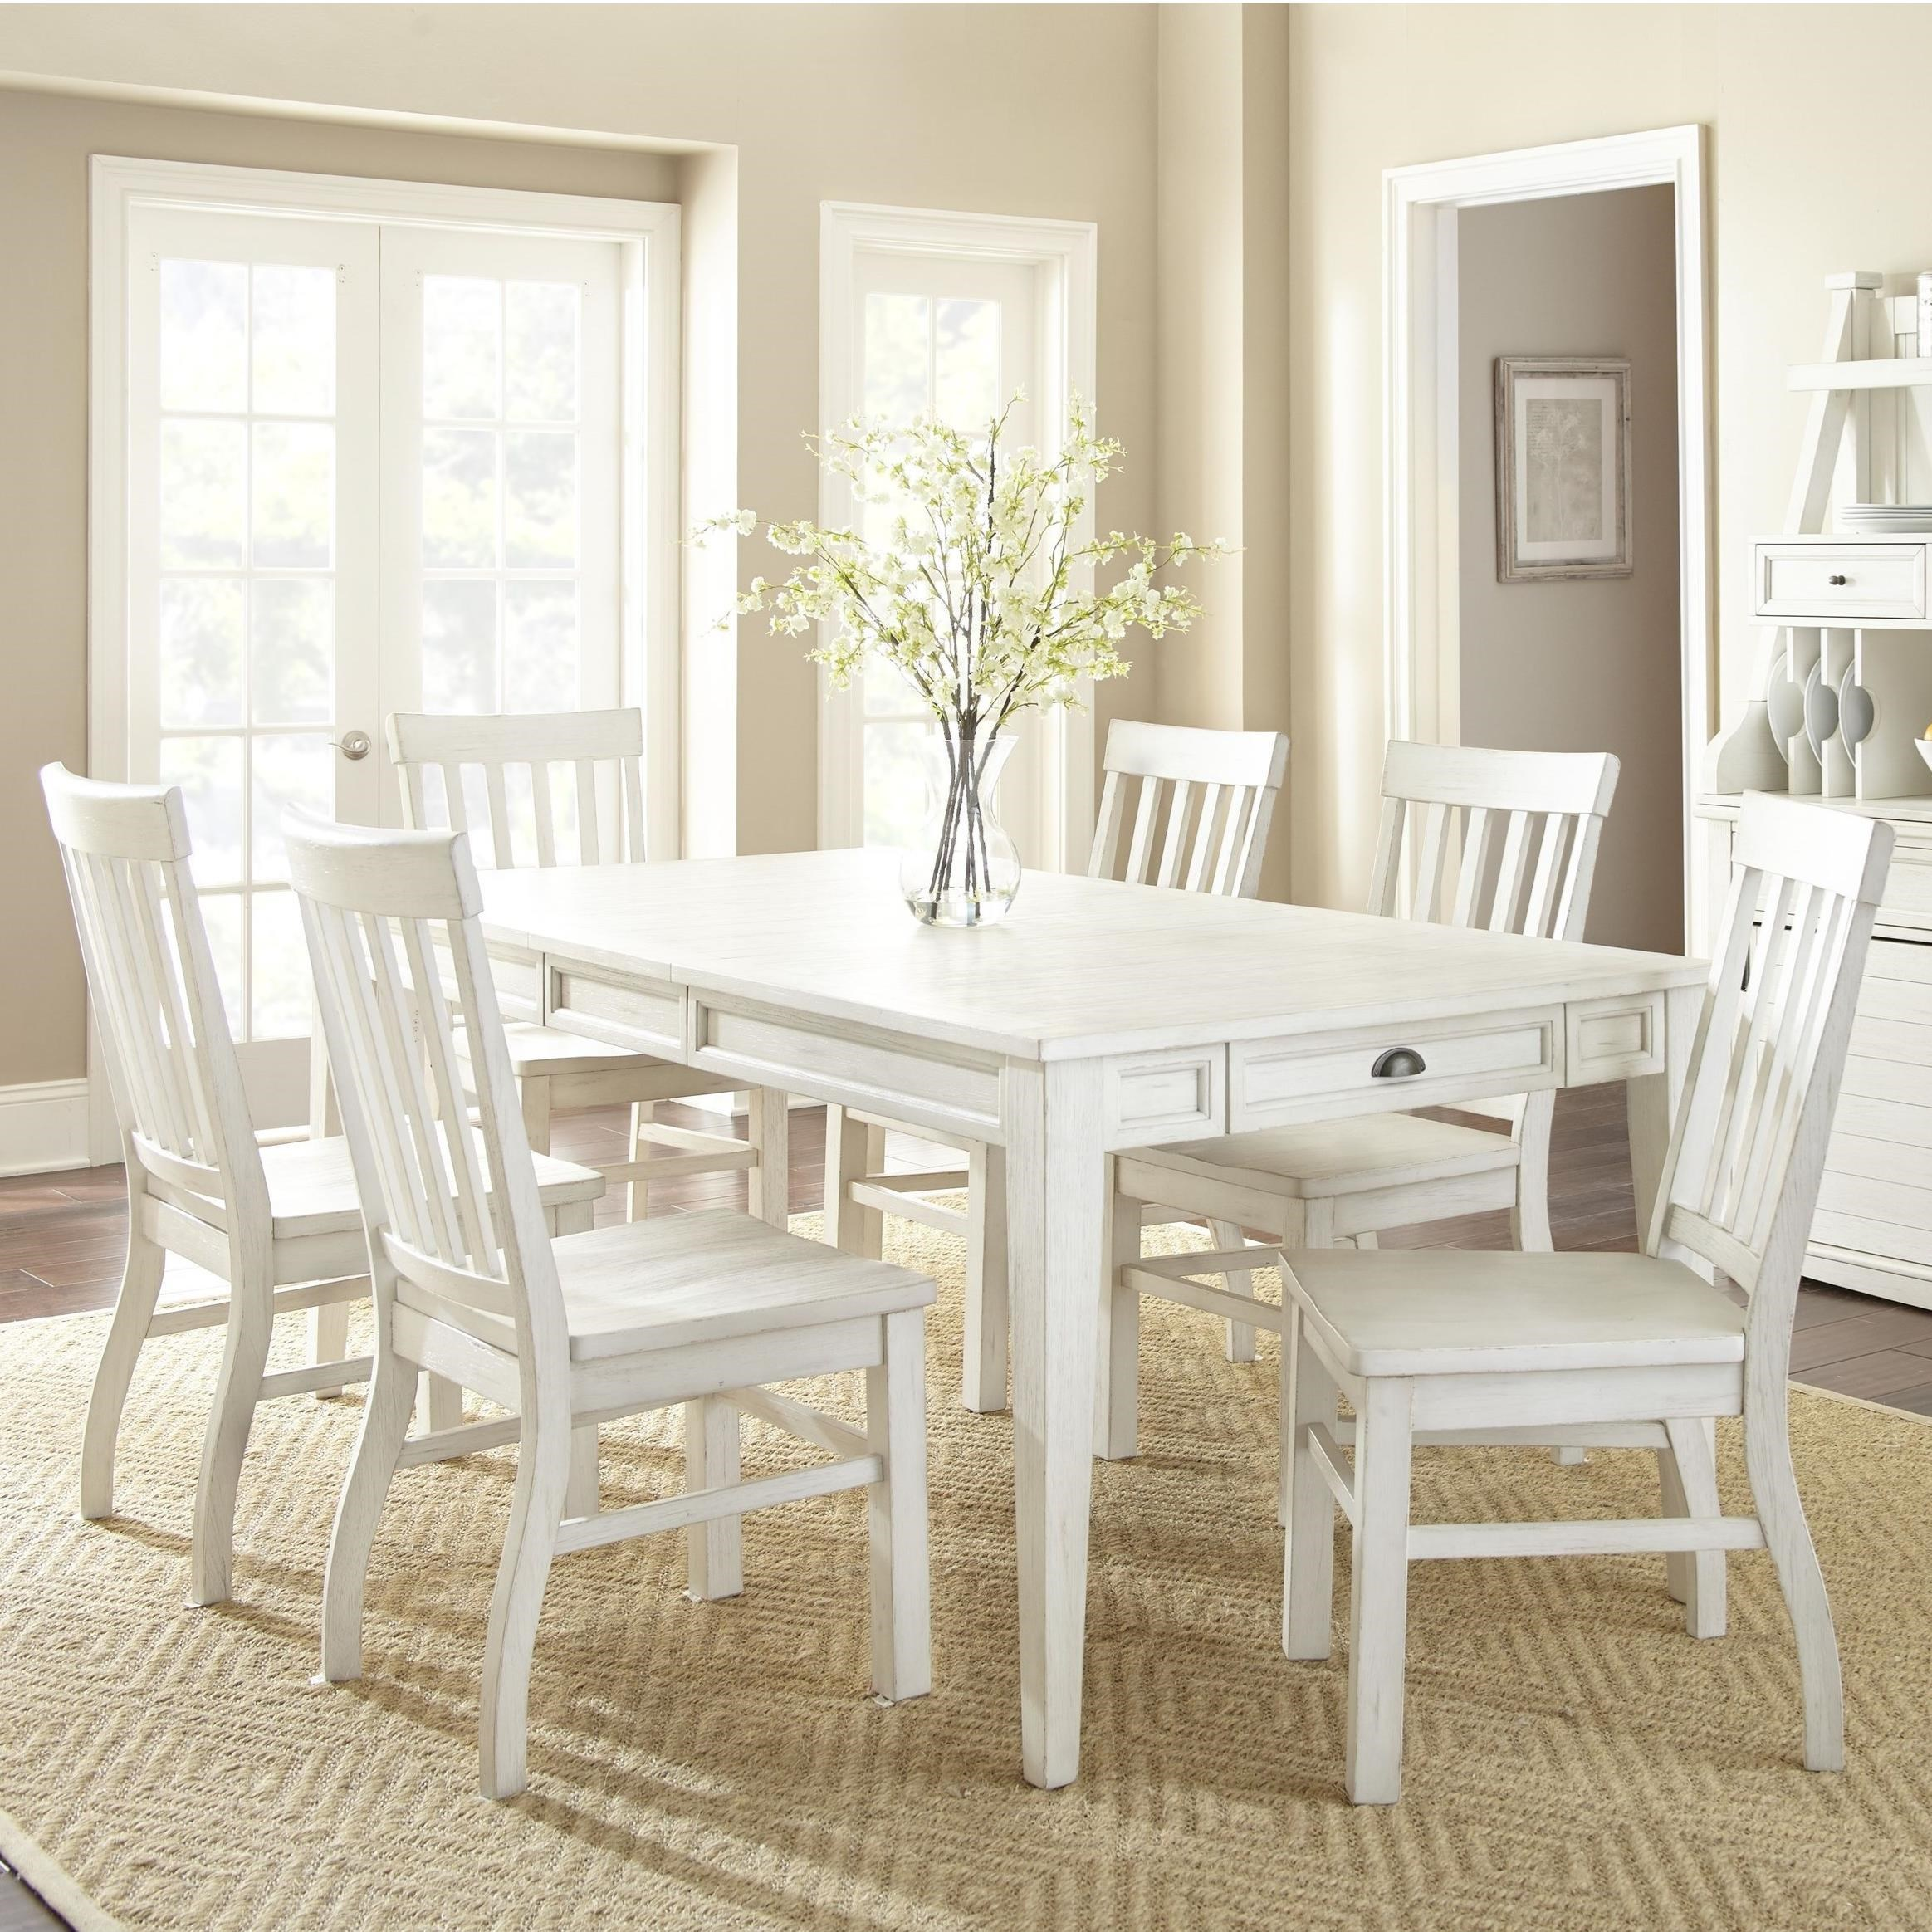 7 Piece Farmhouse Dining Set with Table Storage